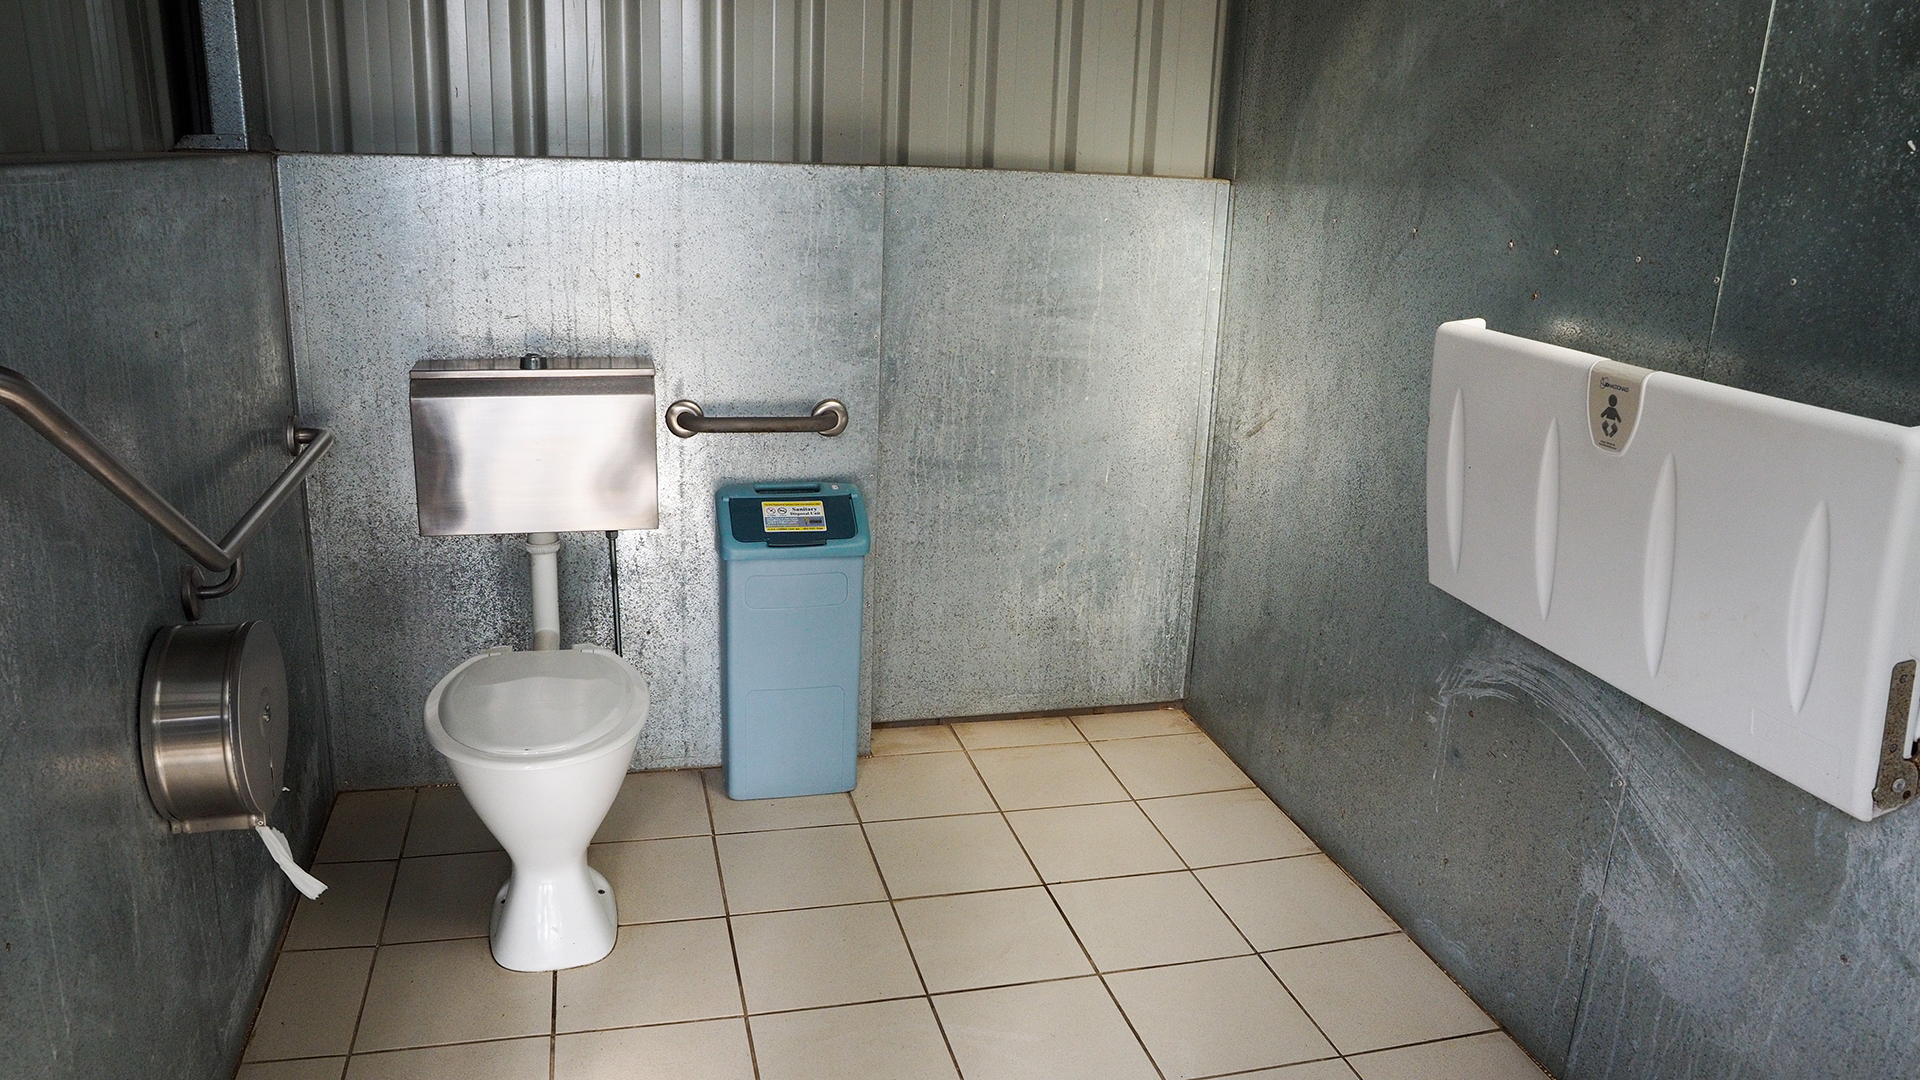 Accessible toilet at the Loddon River picnic area in Bridgewater